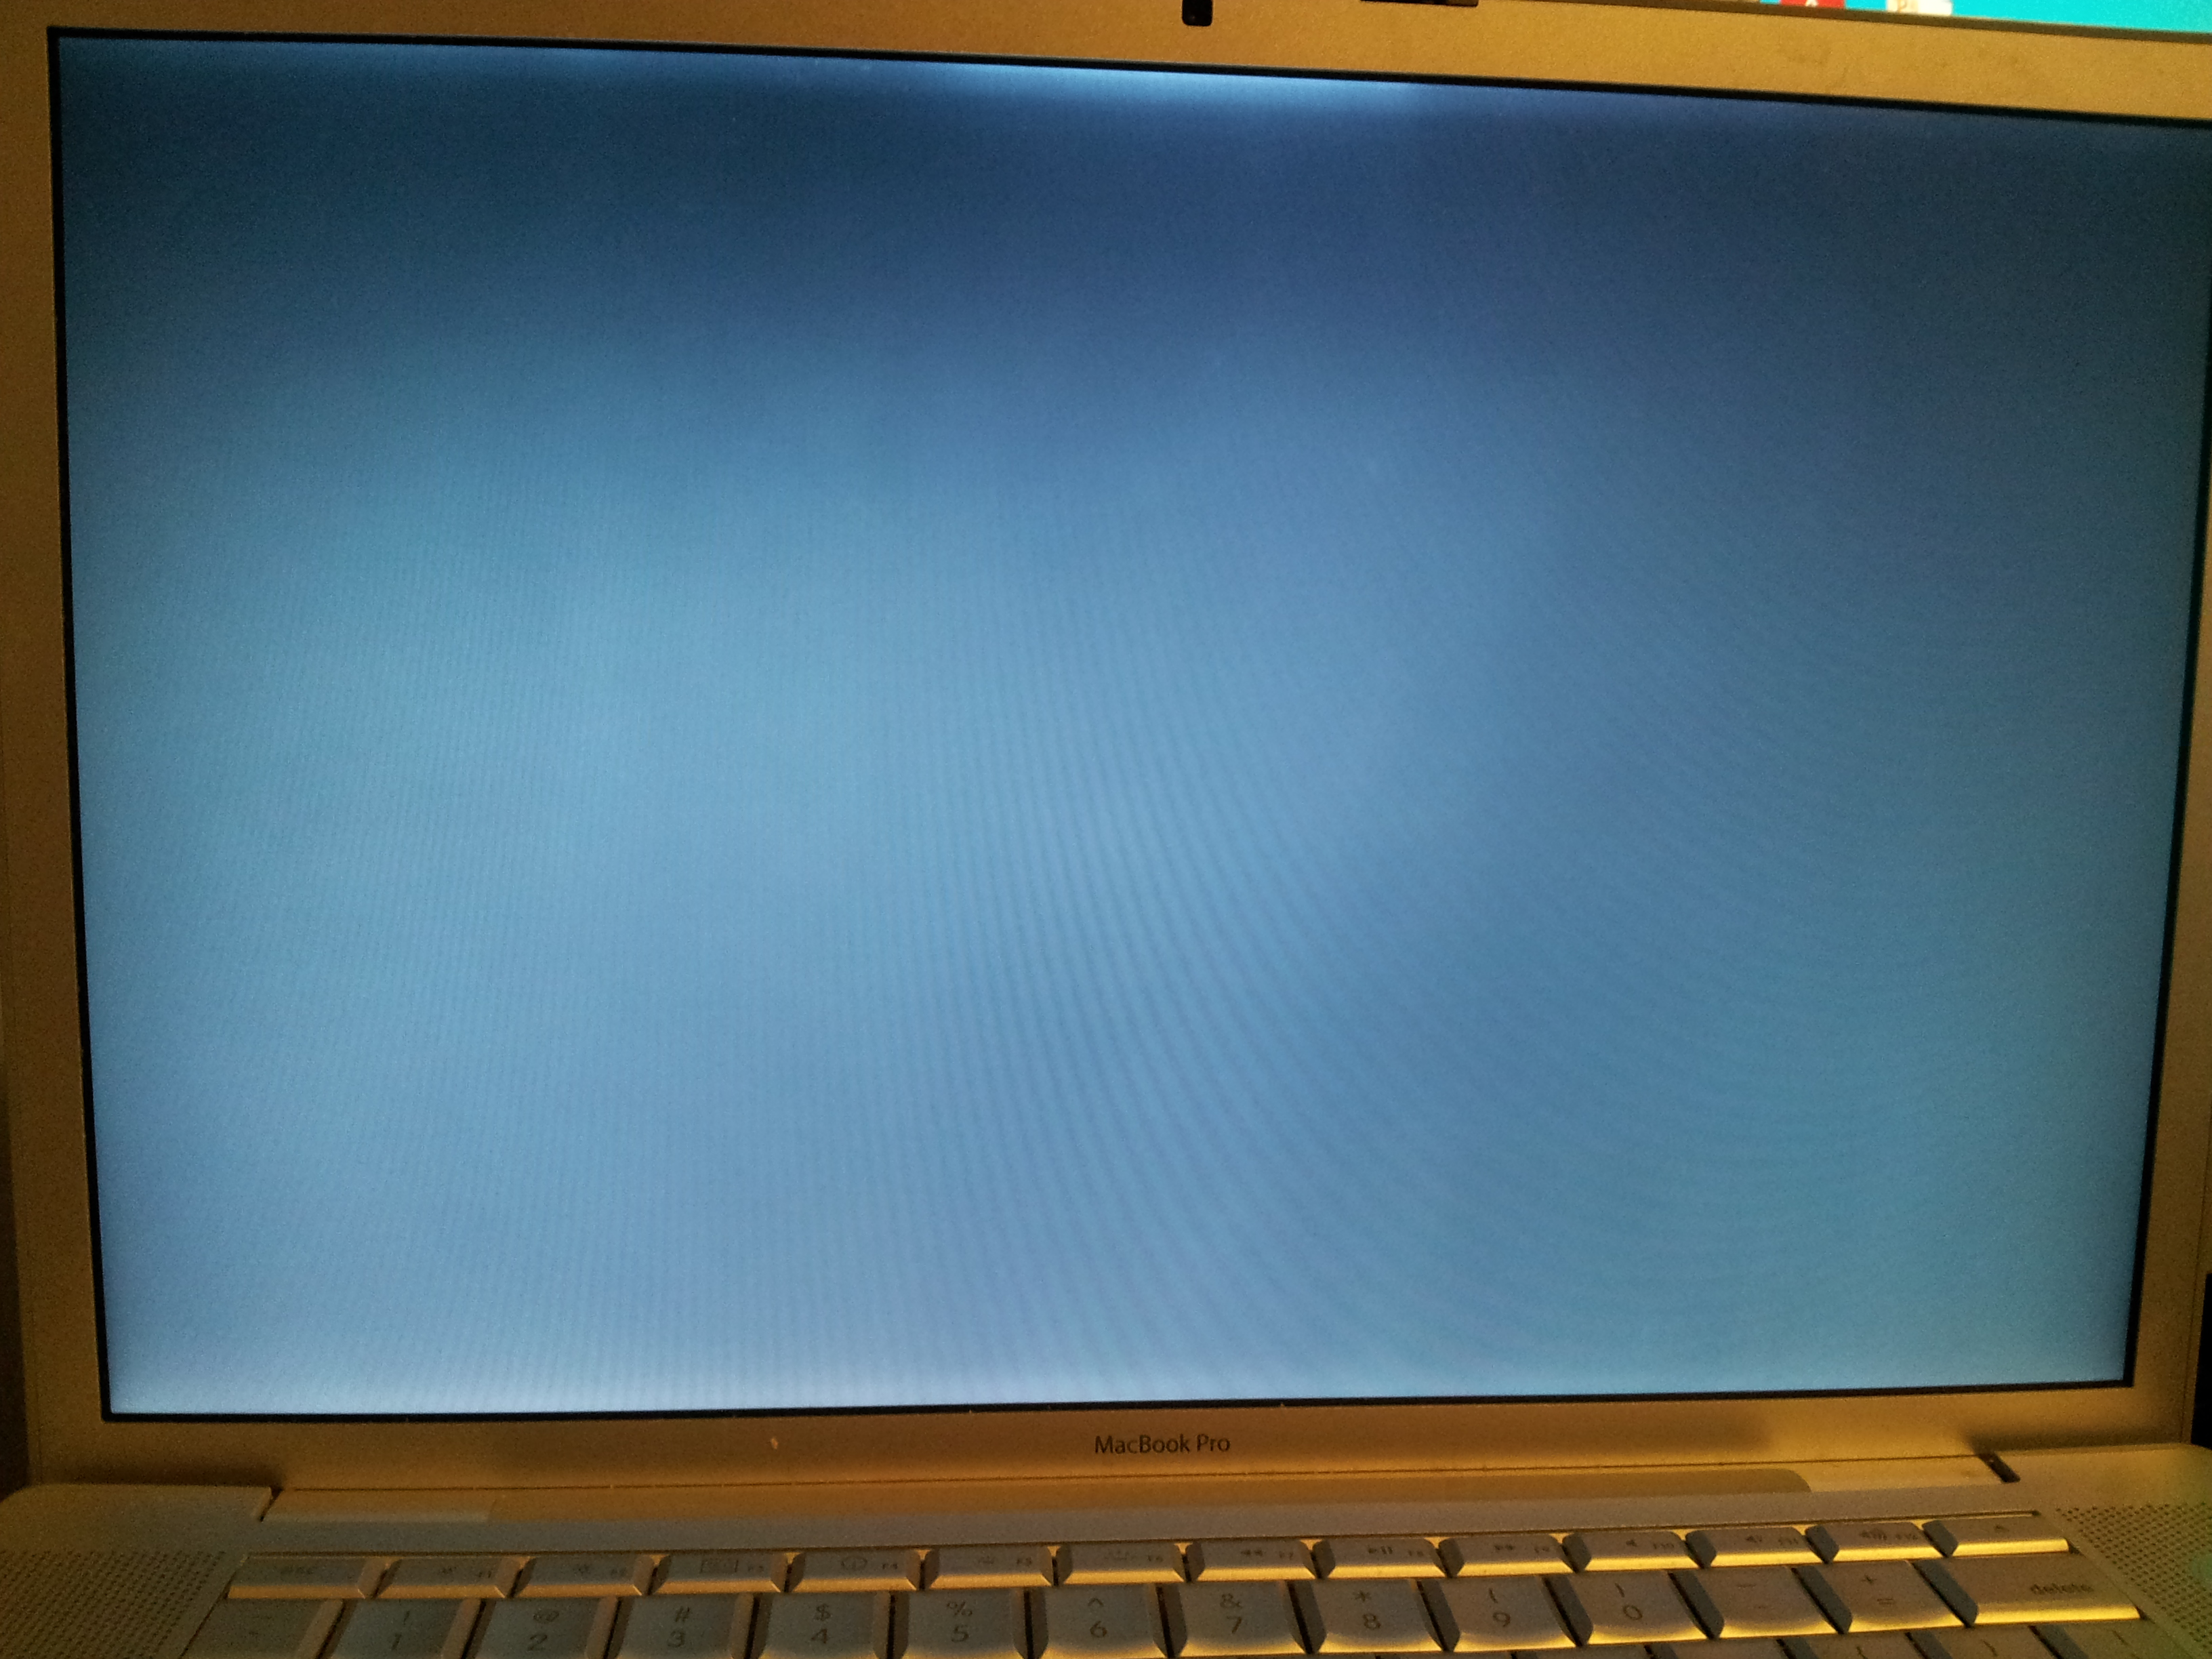 The screen when its booting up - its basically just uniform blue.